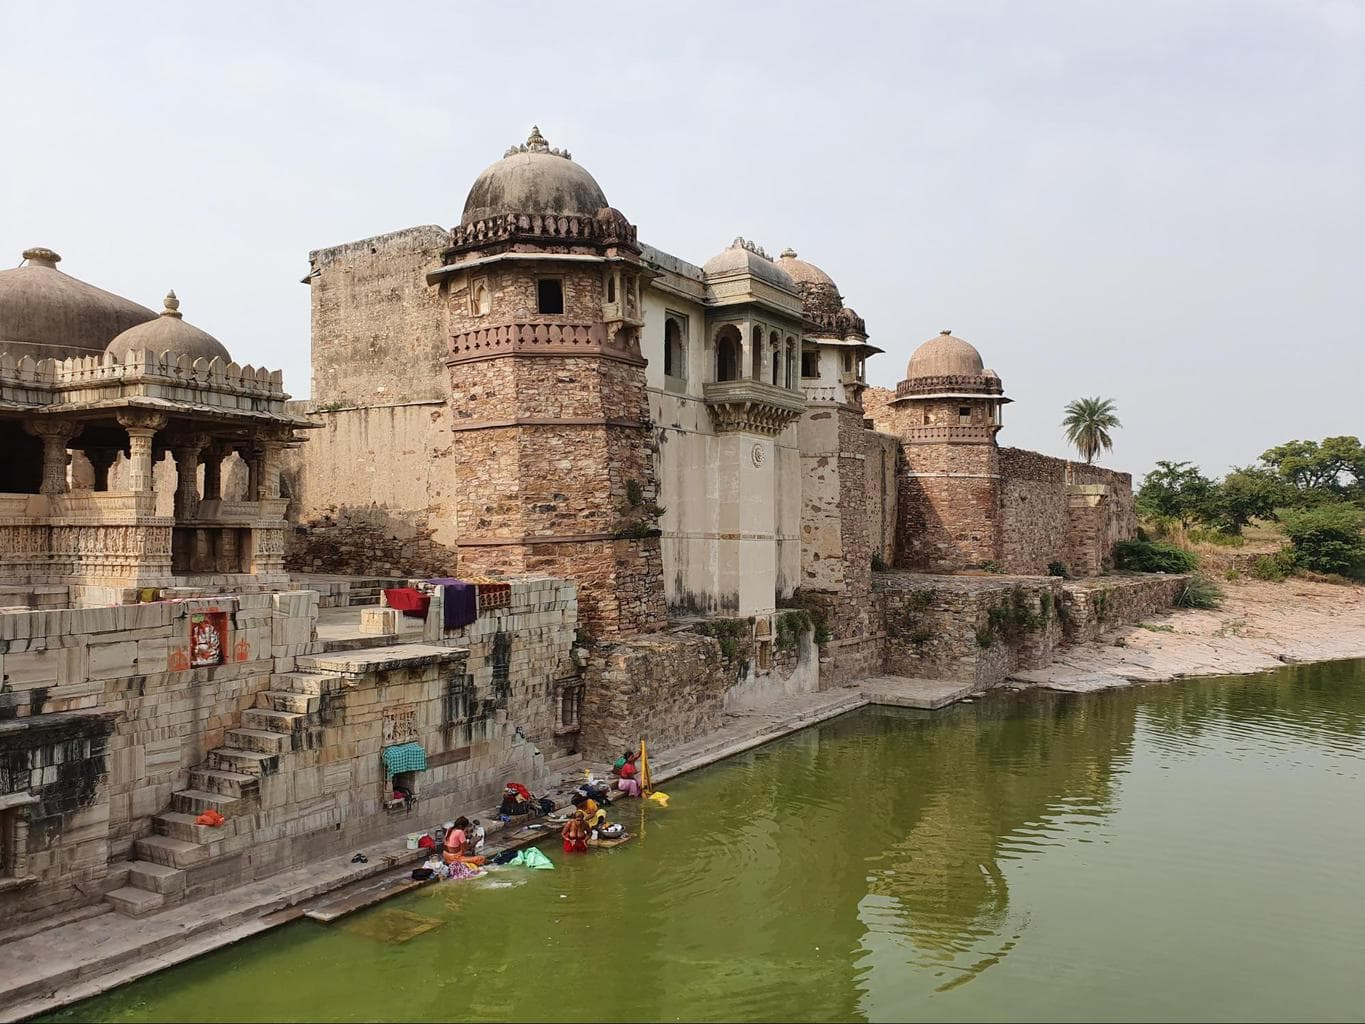 One of the many structures in Chittorgarh Fort